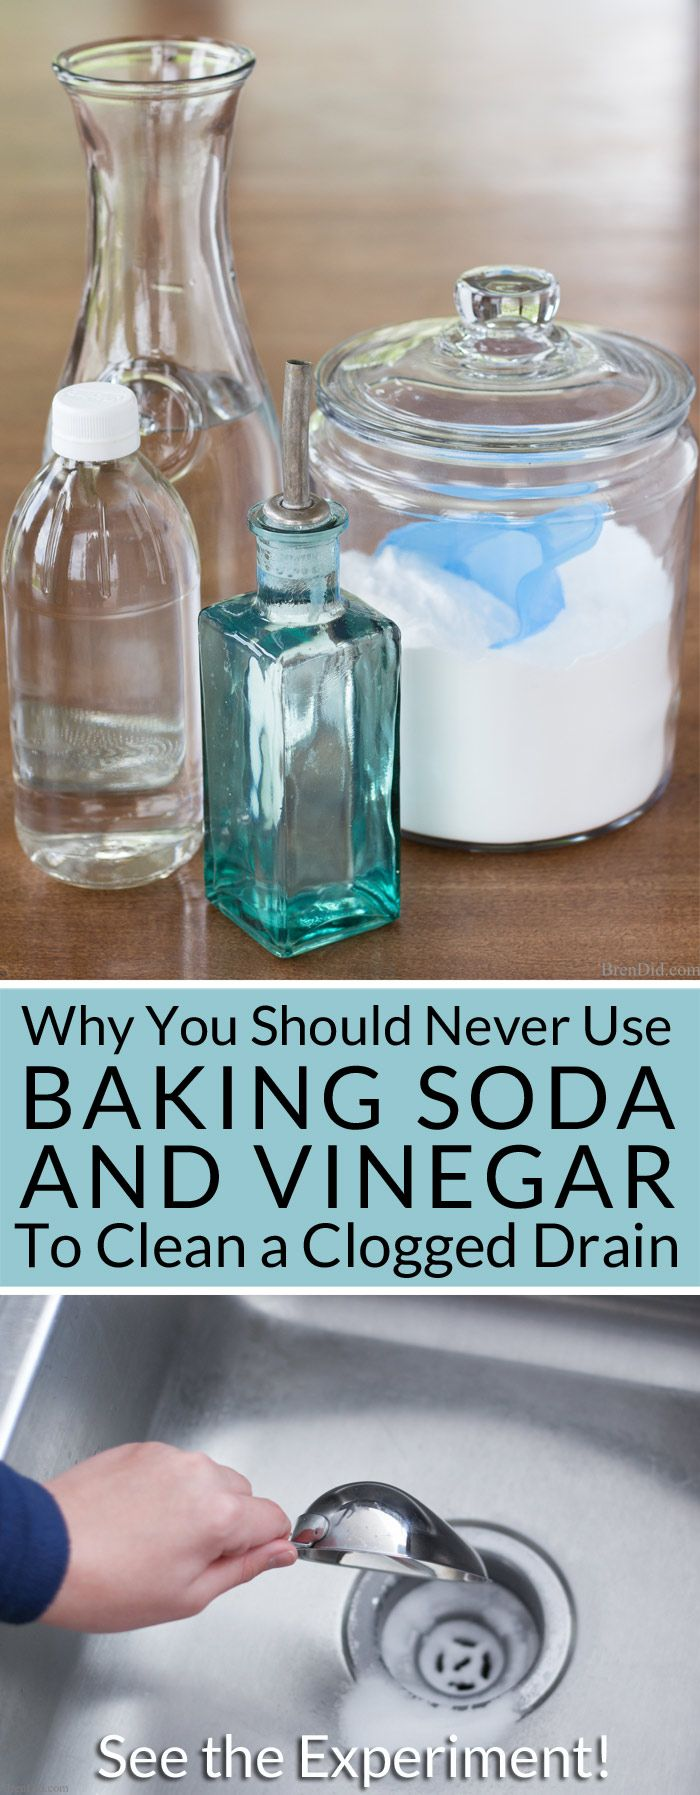 Why You Should Never Use Baking Soda & Vinegar to Clean Drains